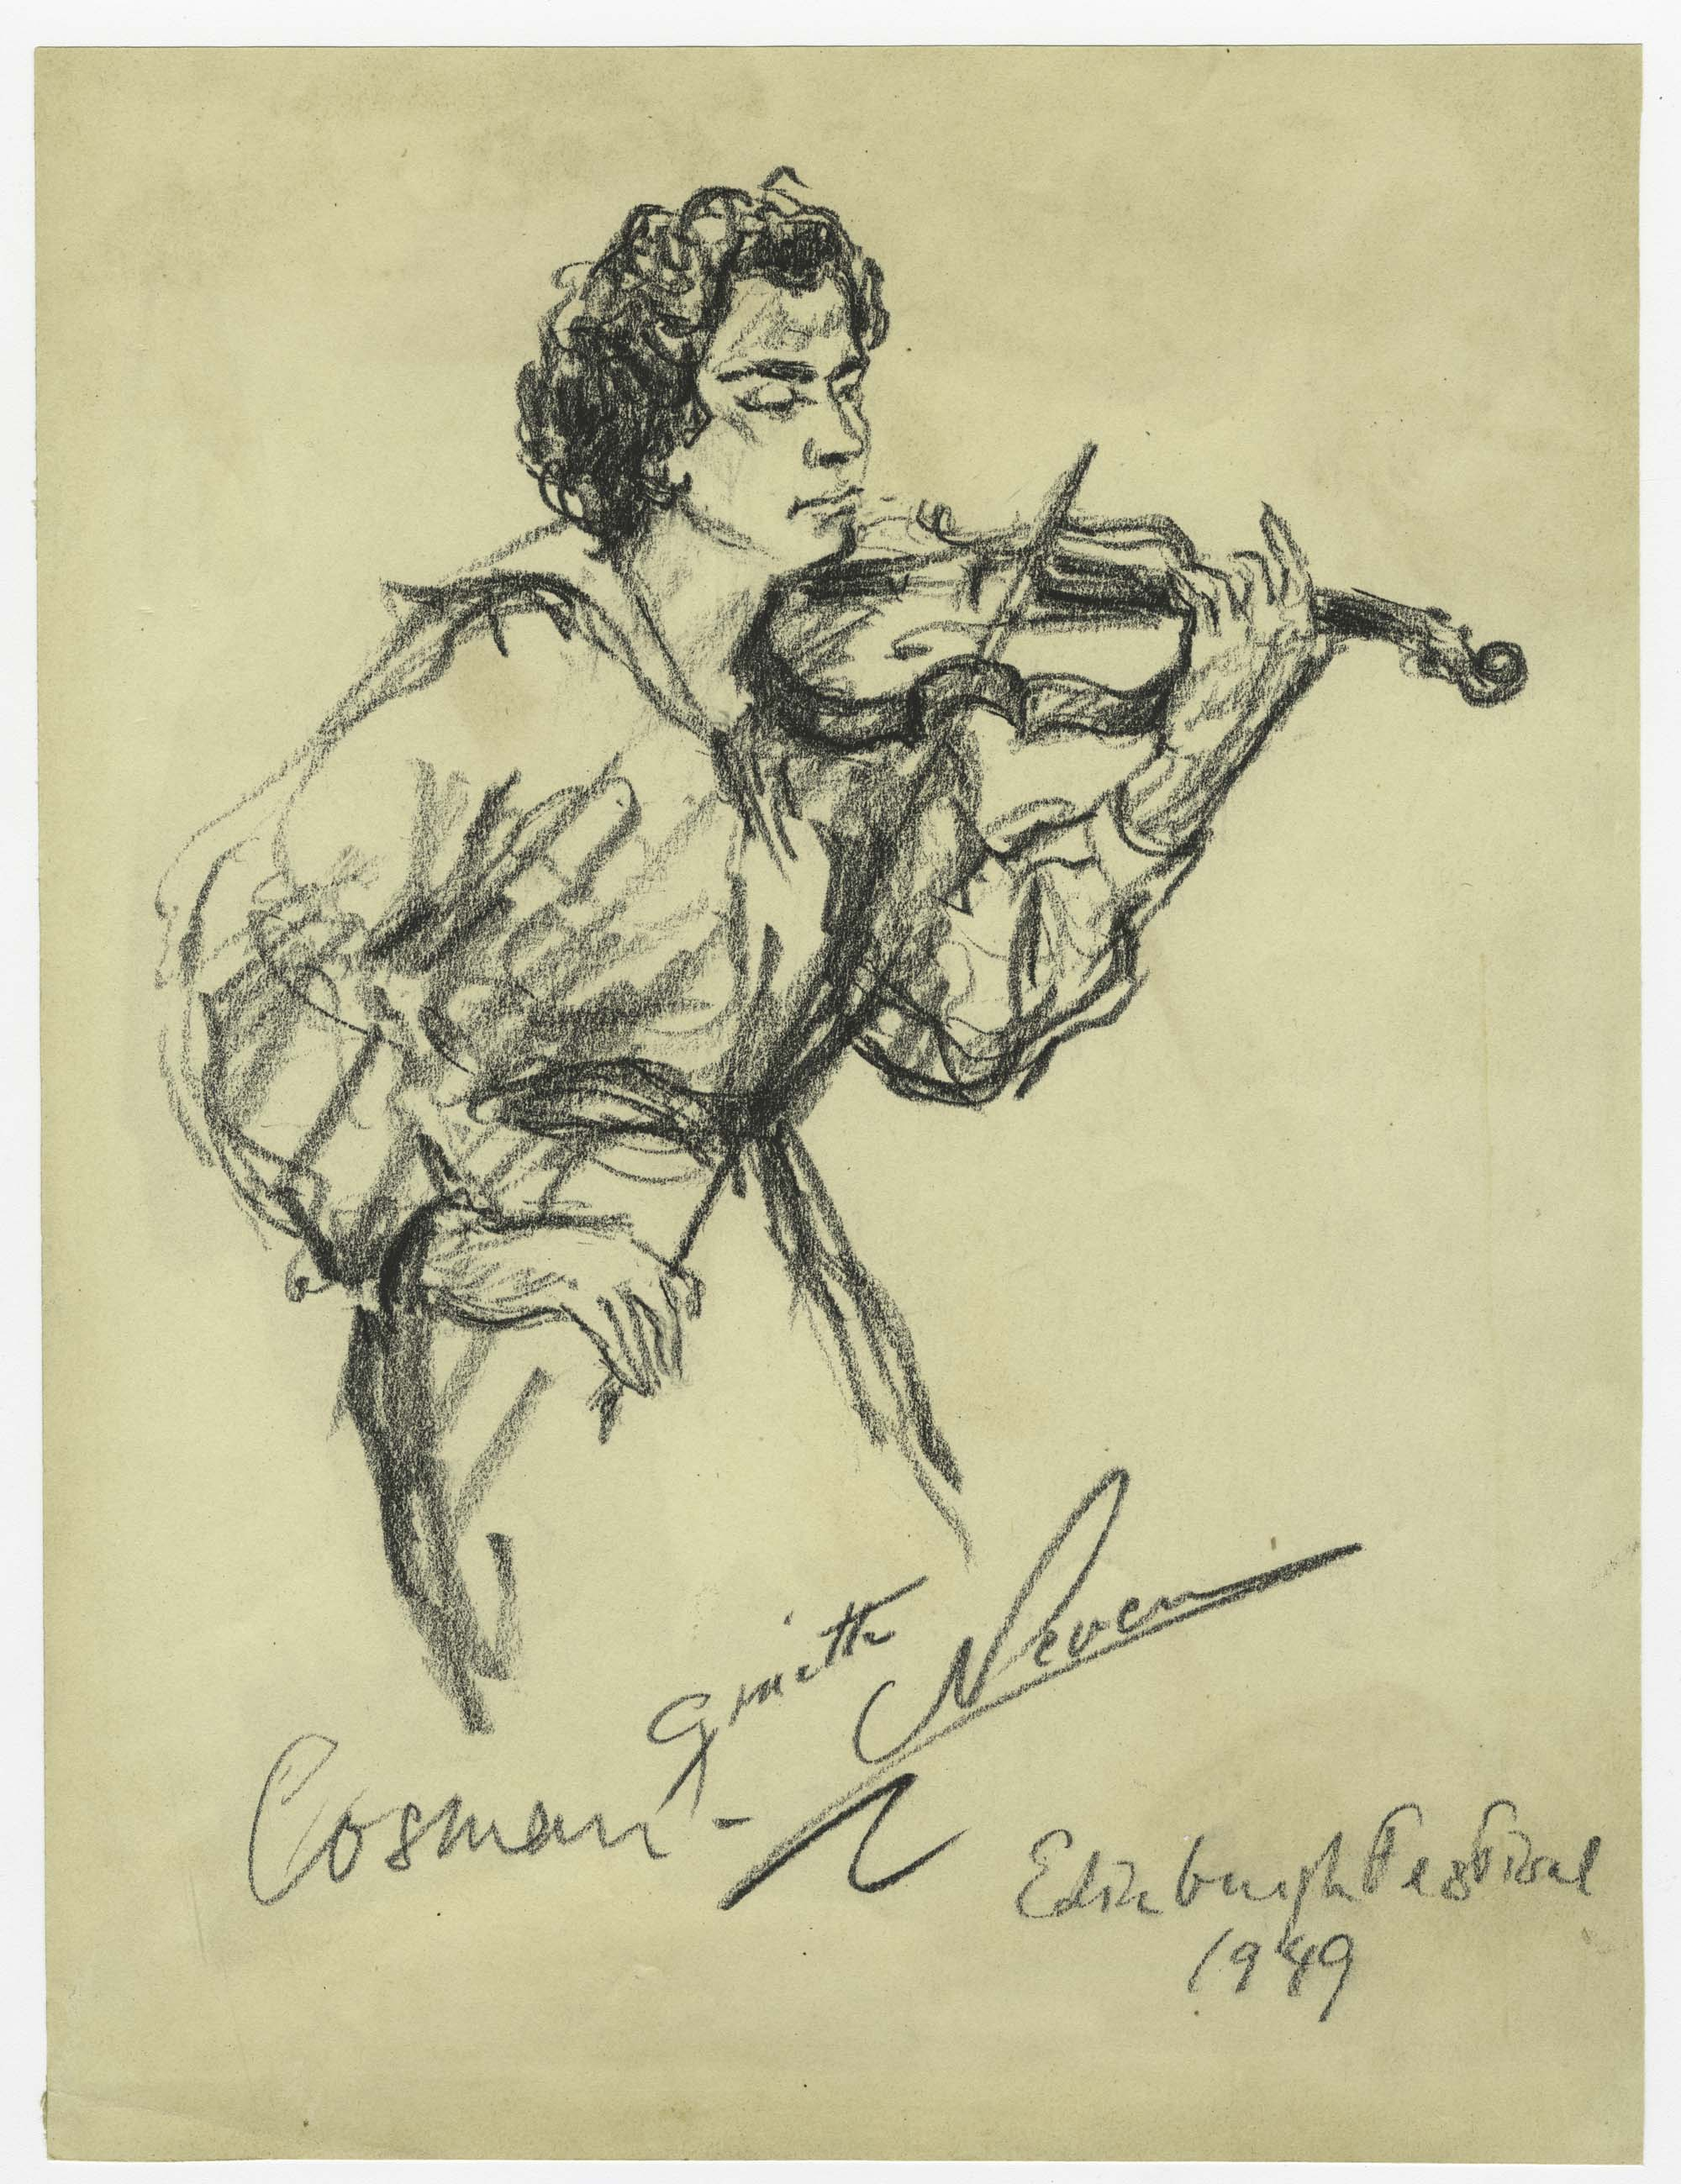 a sketch of a woman playing a violin